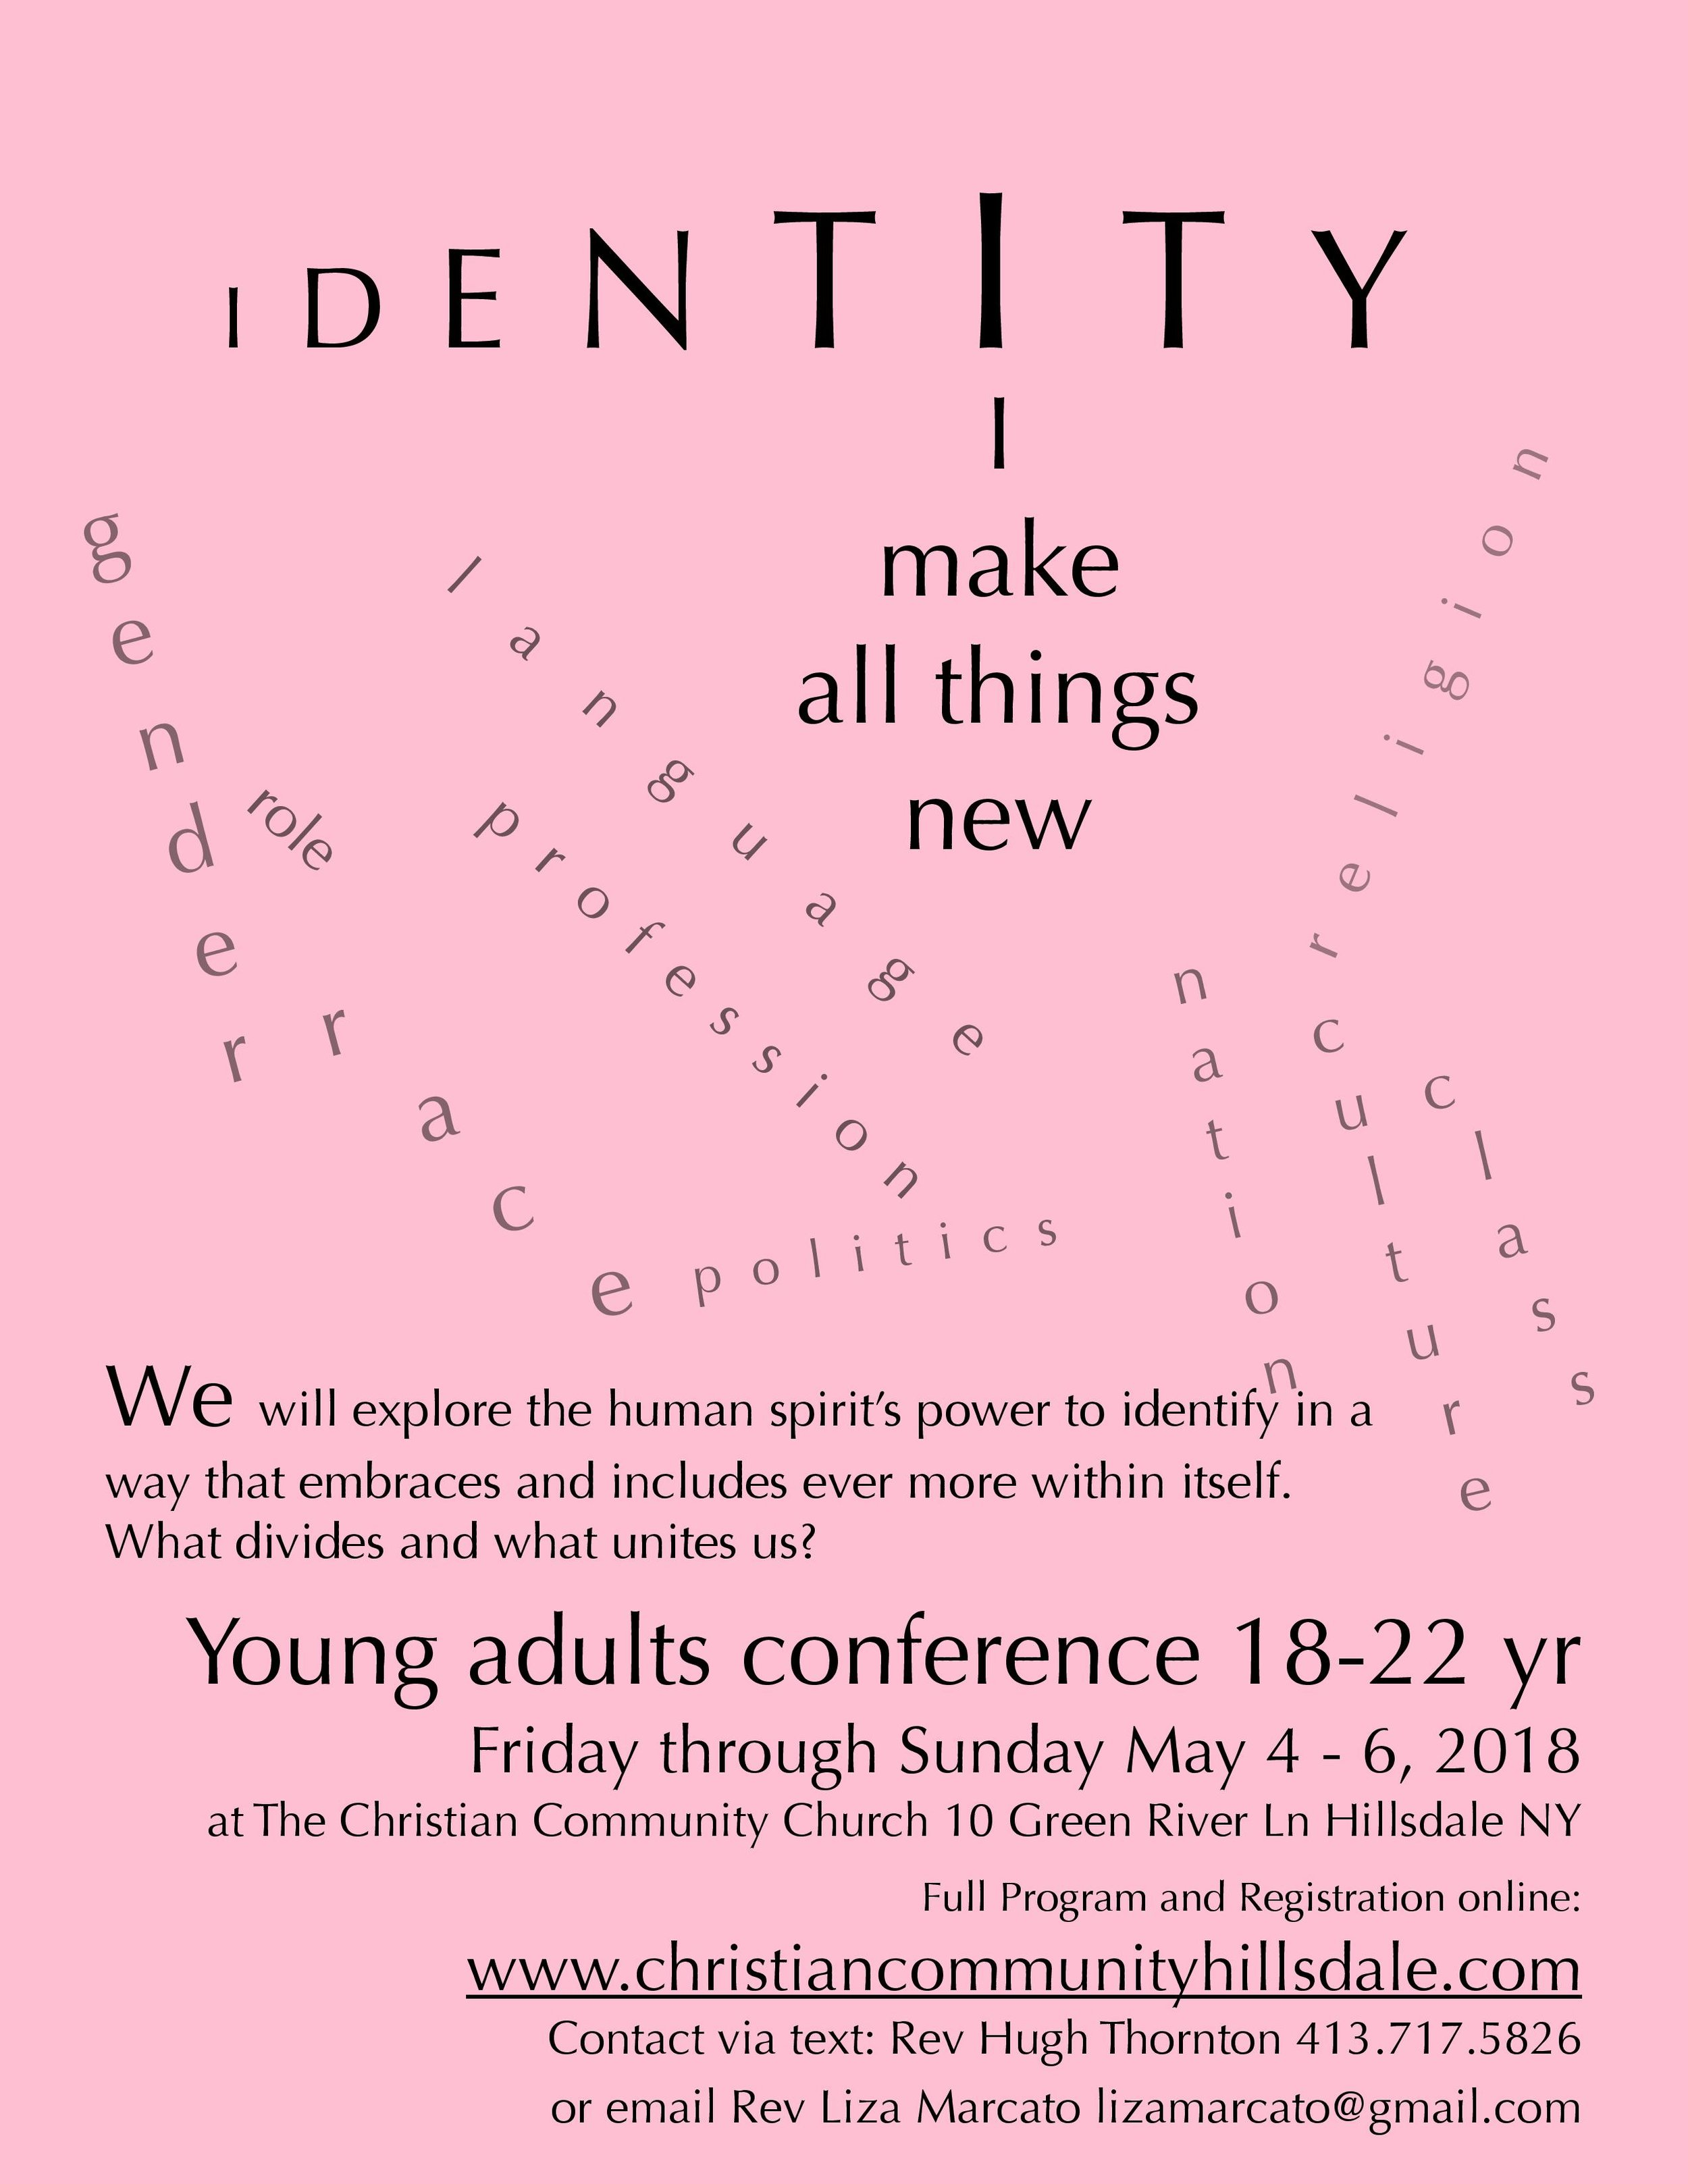 IdentiTy young adults conf poster 2018-page-001.jpg